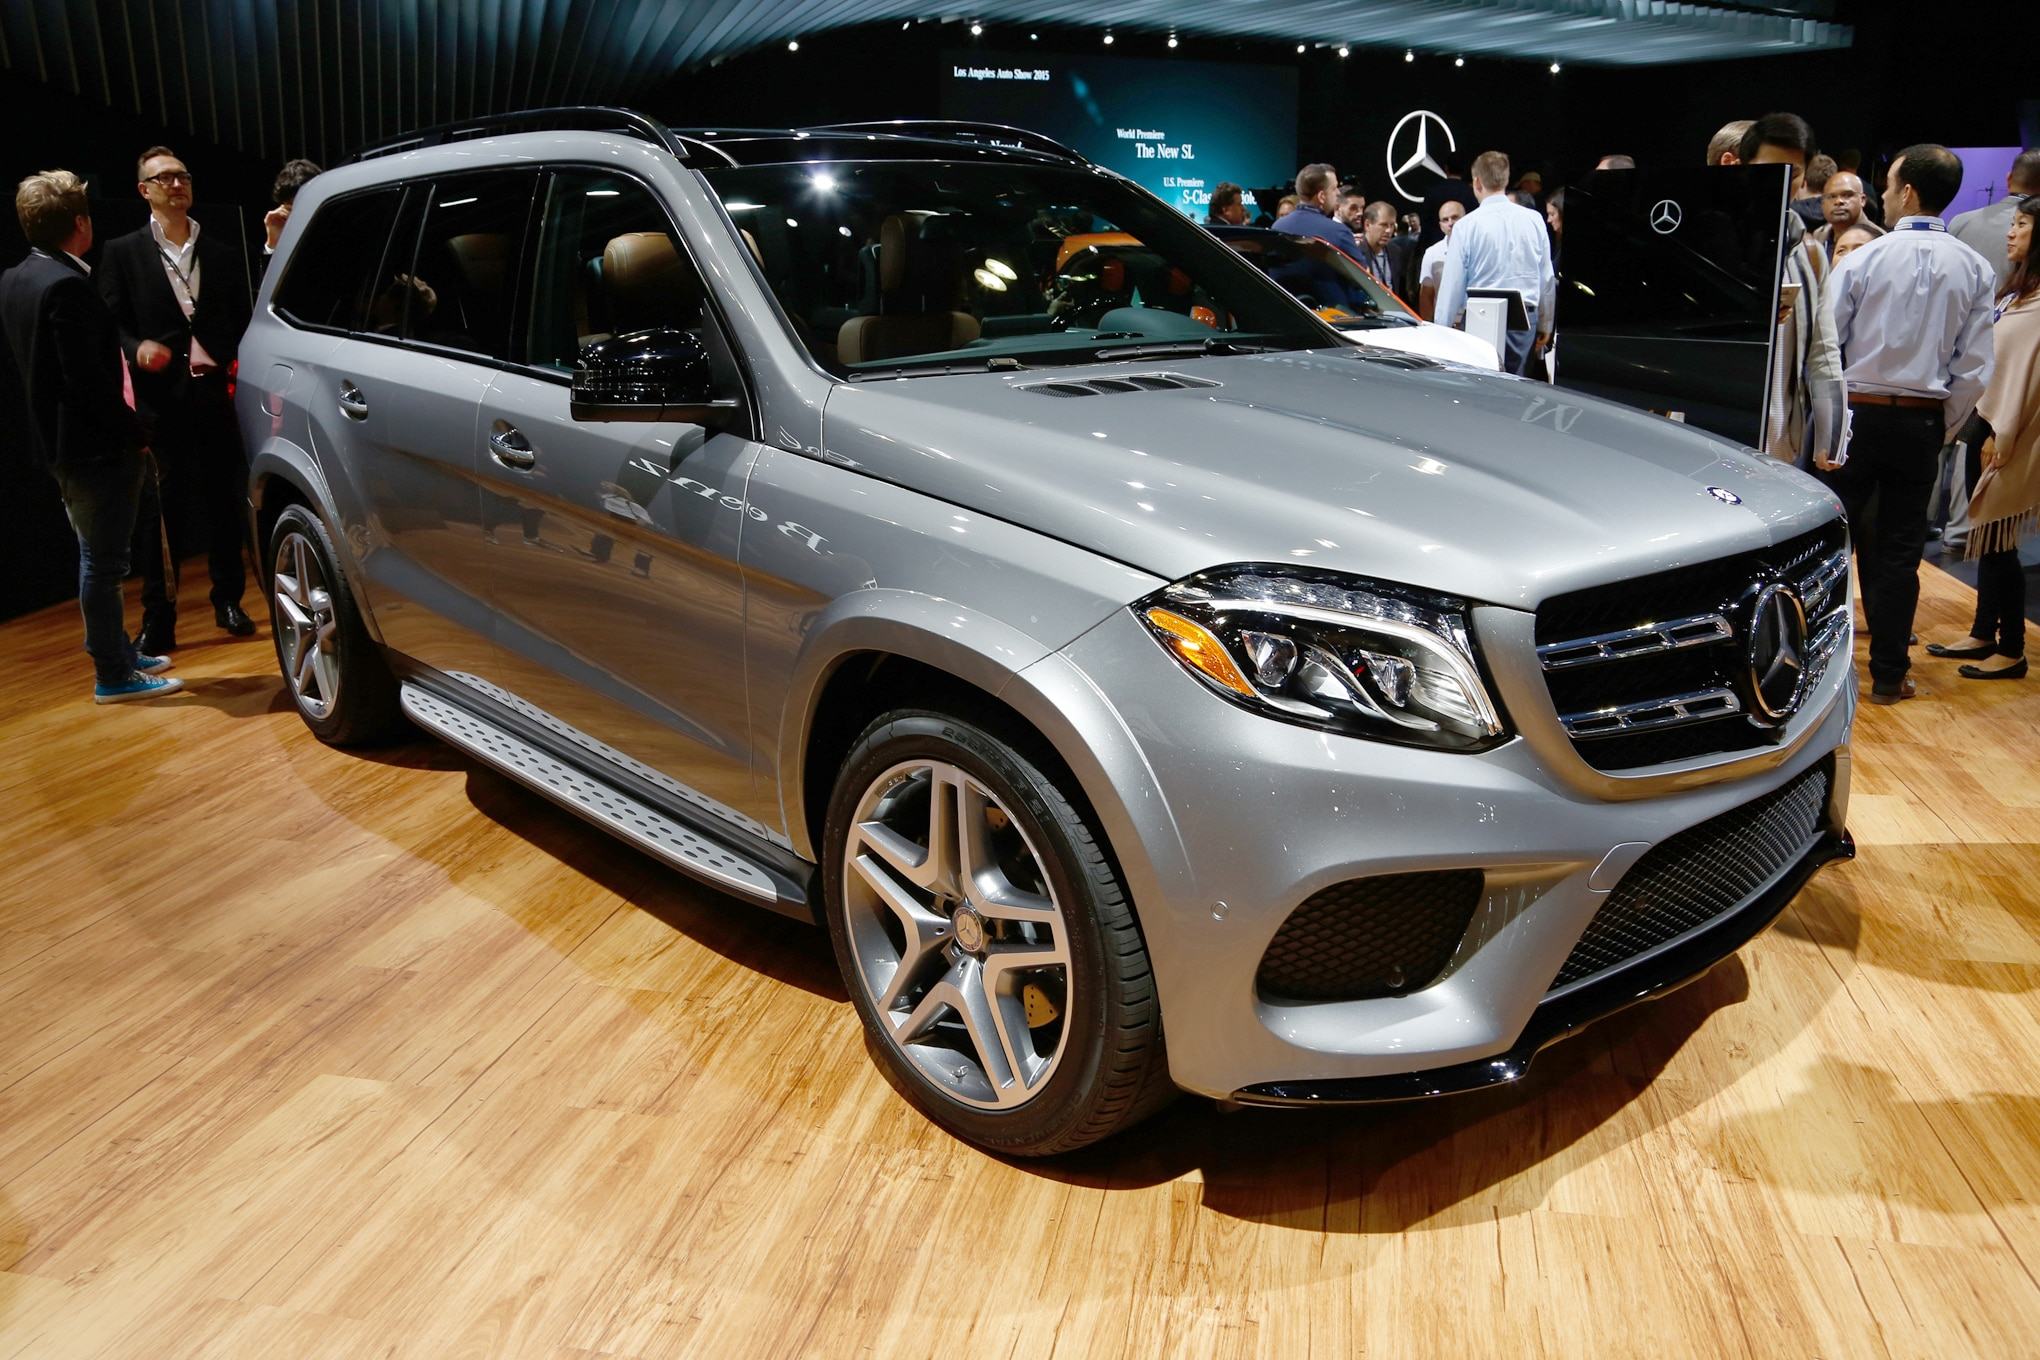 2017 mercedes benz gls replaces gl adds nine speed transmission. Black Bedroom Furniture Sets. Home Design Ideas